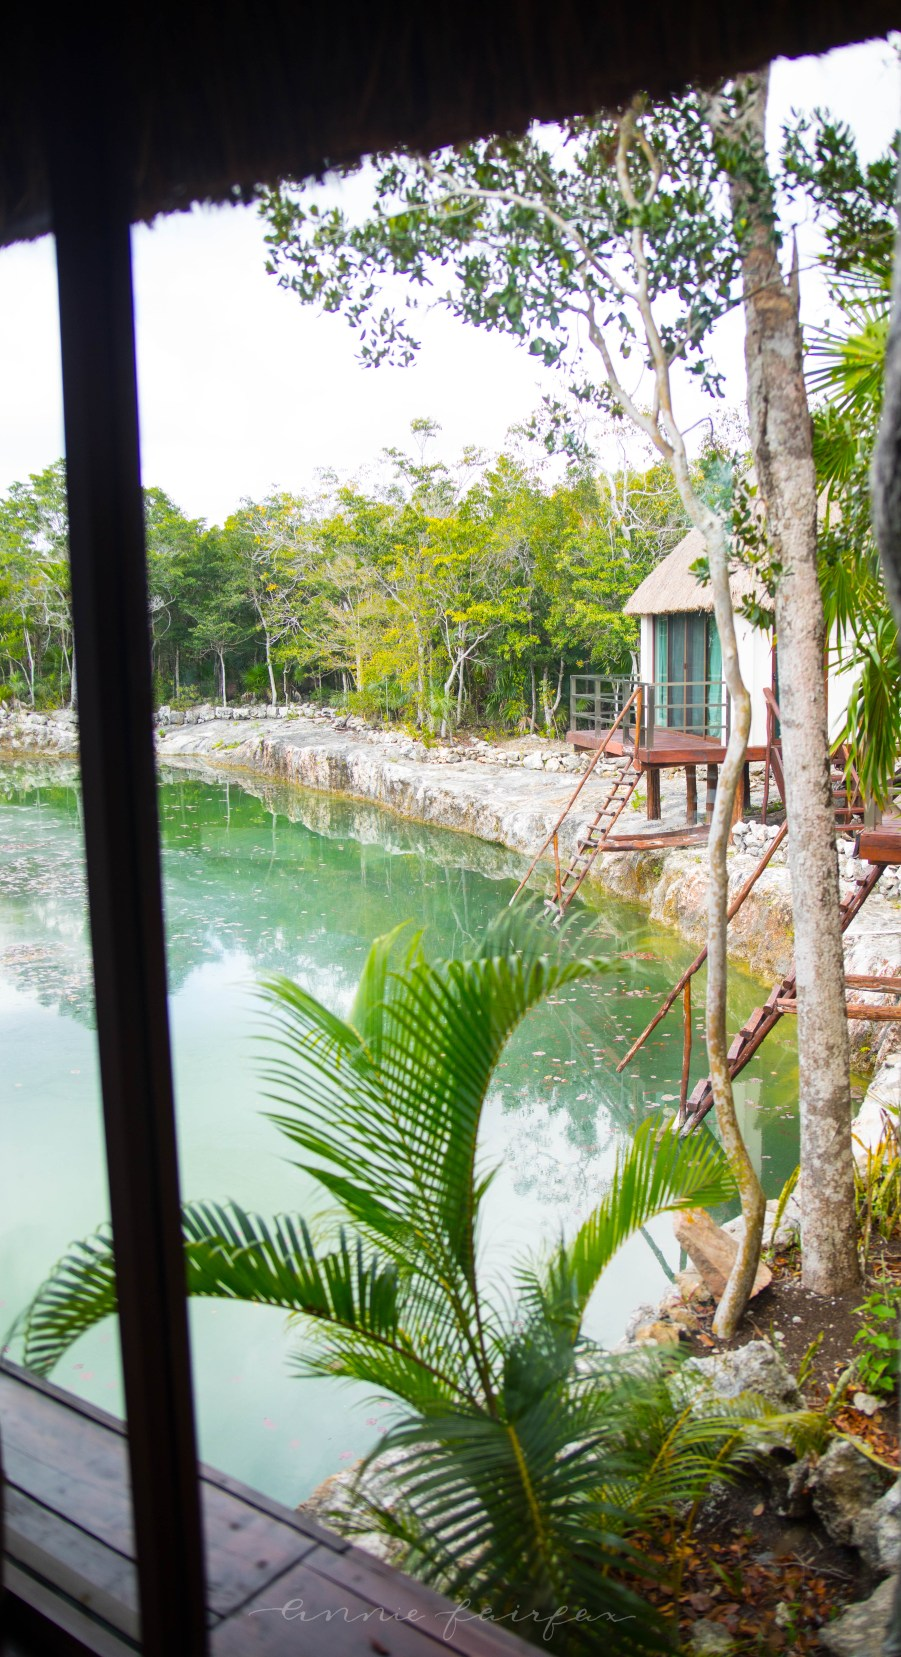 Zamna Tulum Eco-Chic Glamping Overwater Bungalows Concert Venue Cenote Hotel Luxury Hotels of the World